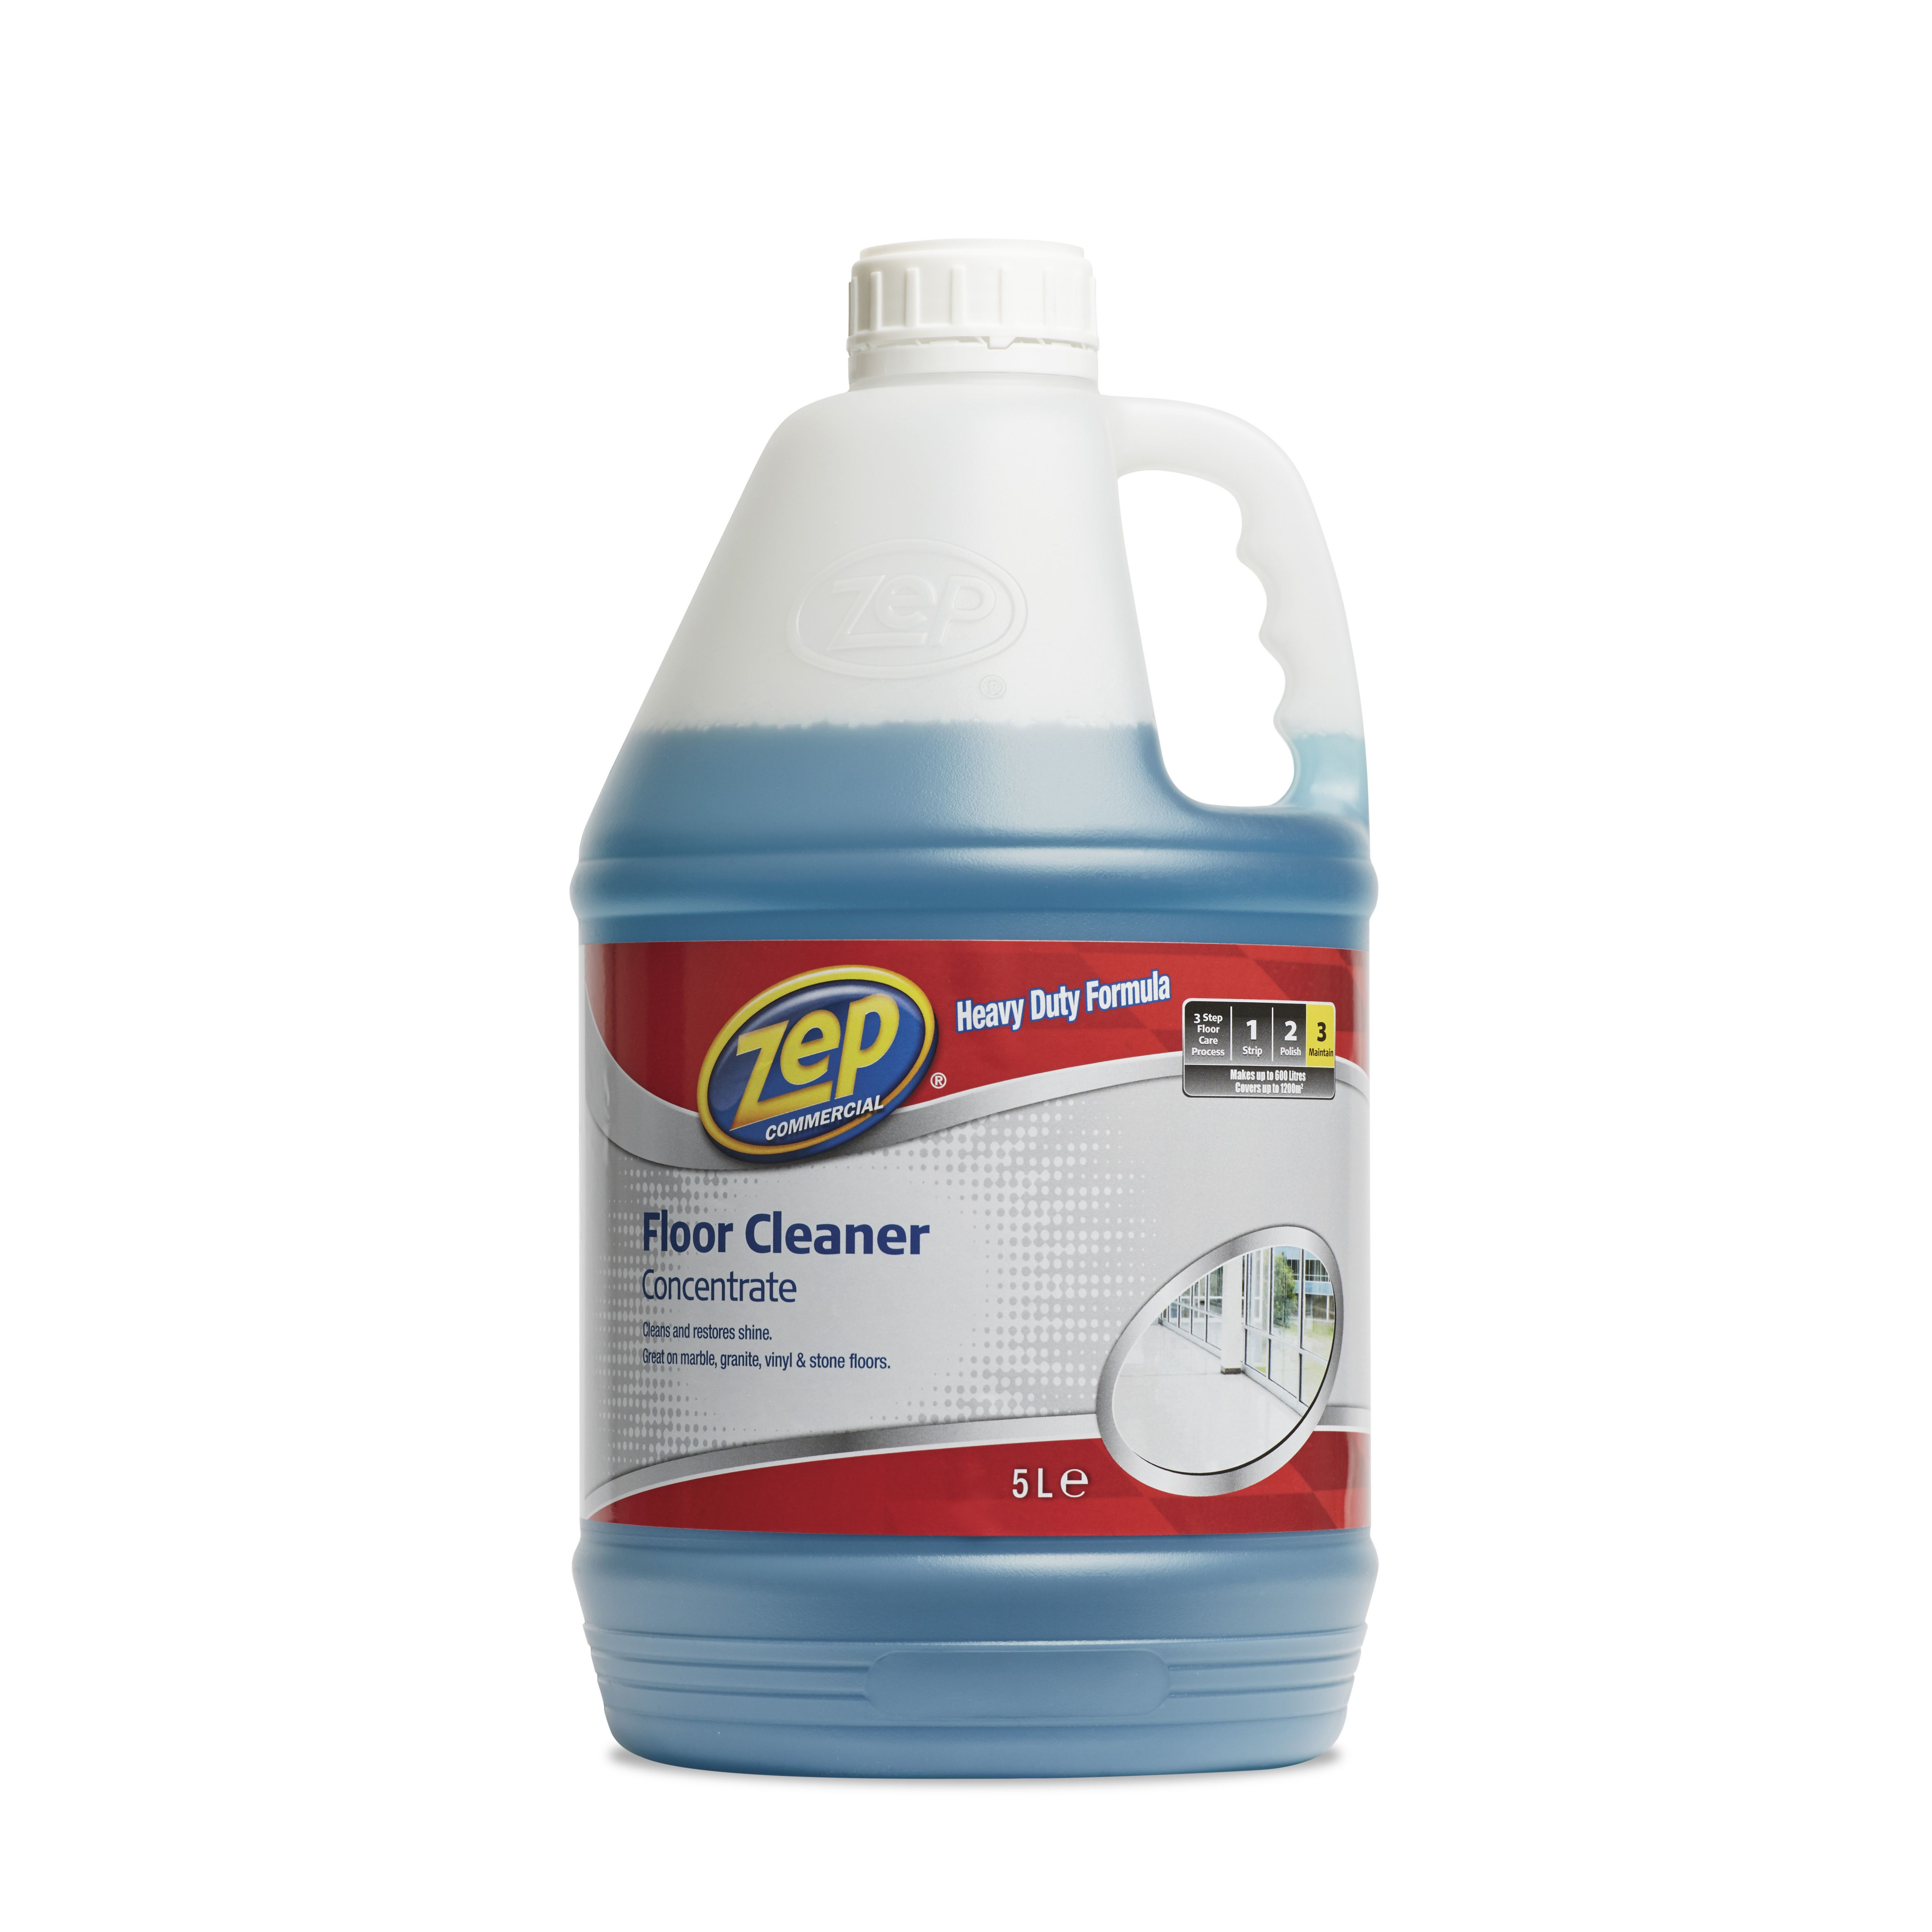 Zep commercial floor cleaner 5000 ml departments diy for Commercial degreaser for concrete